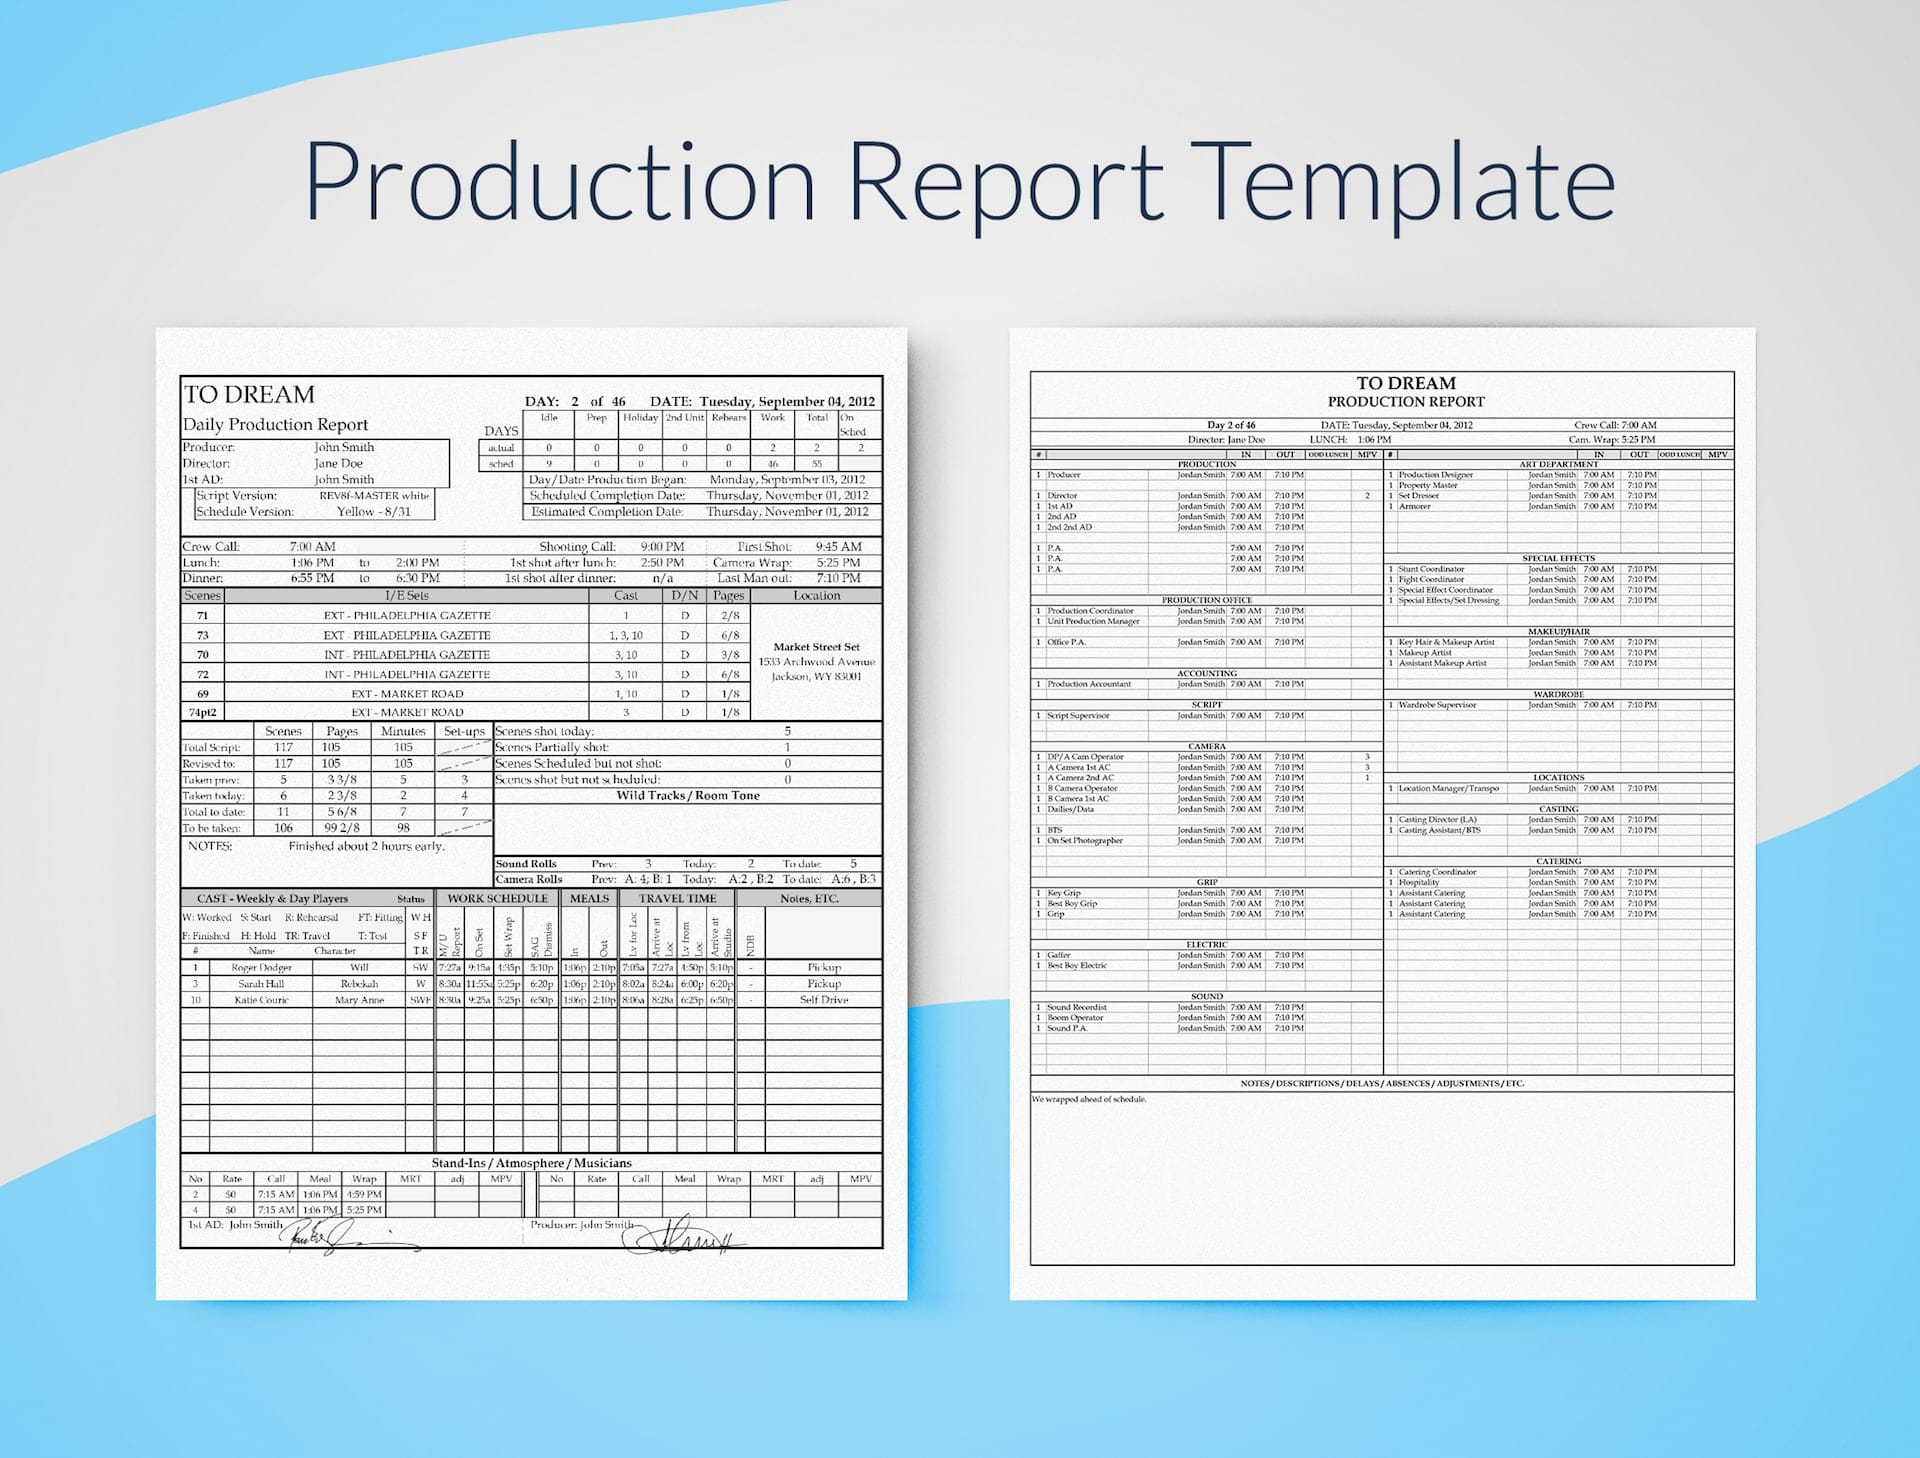 Letter Of Production Report Template Excel And Production Report Template Excel For Personal Use